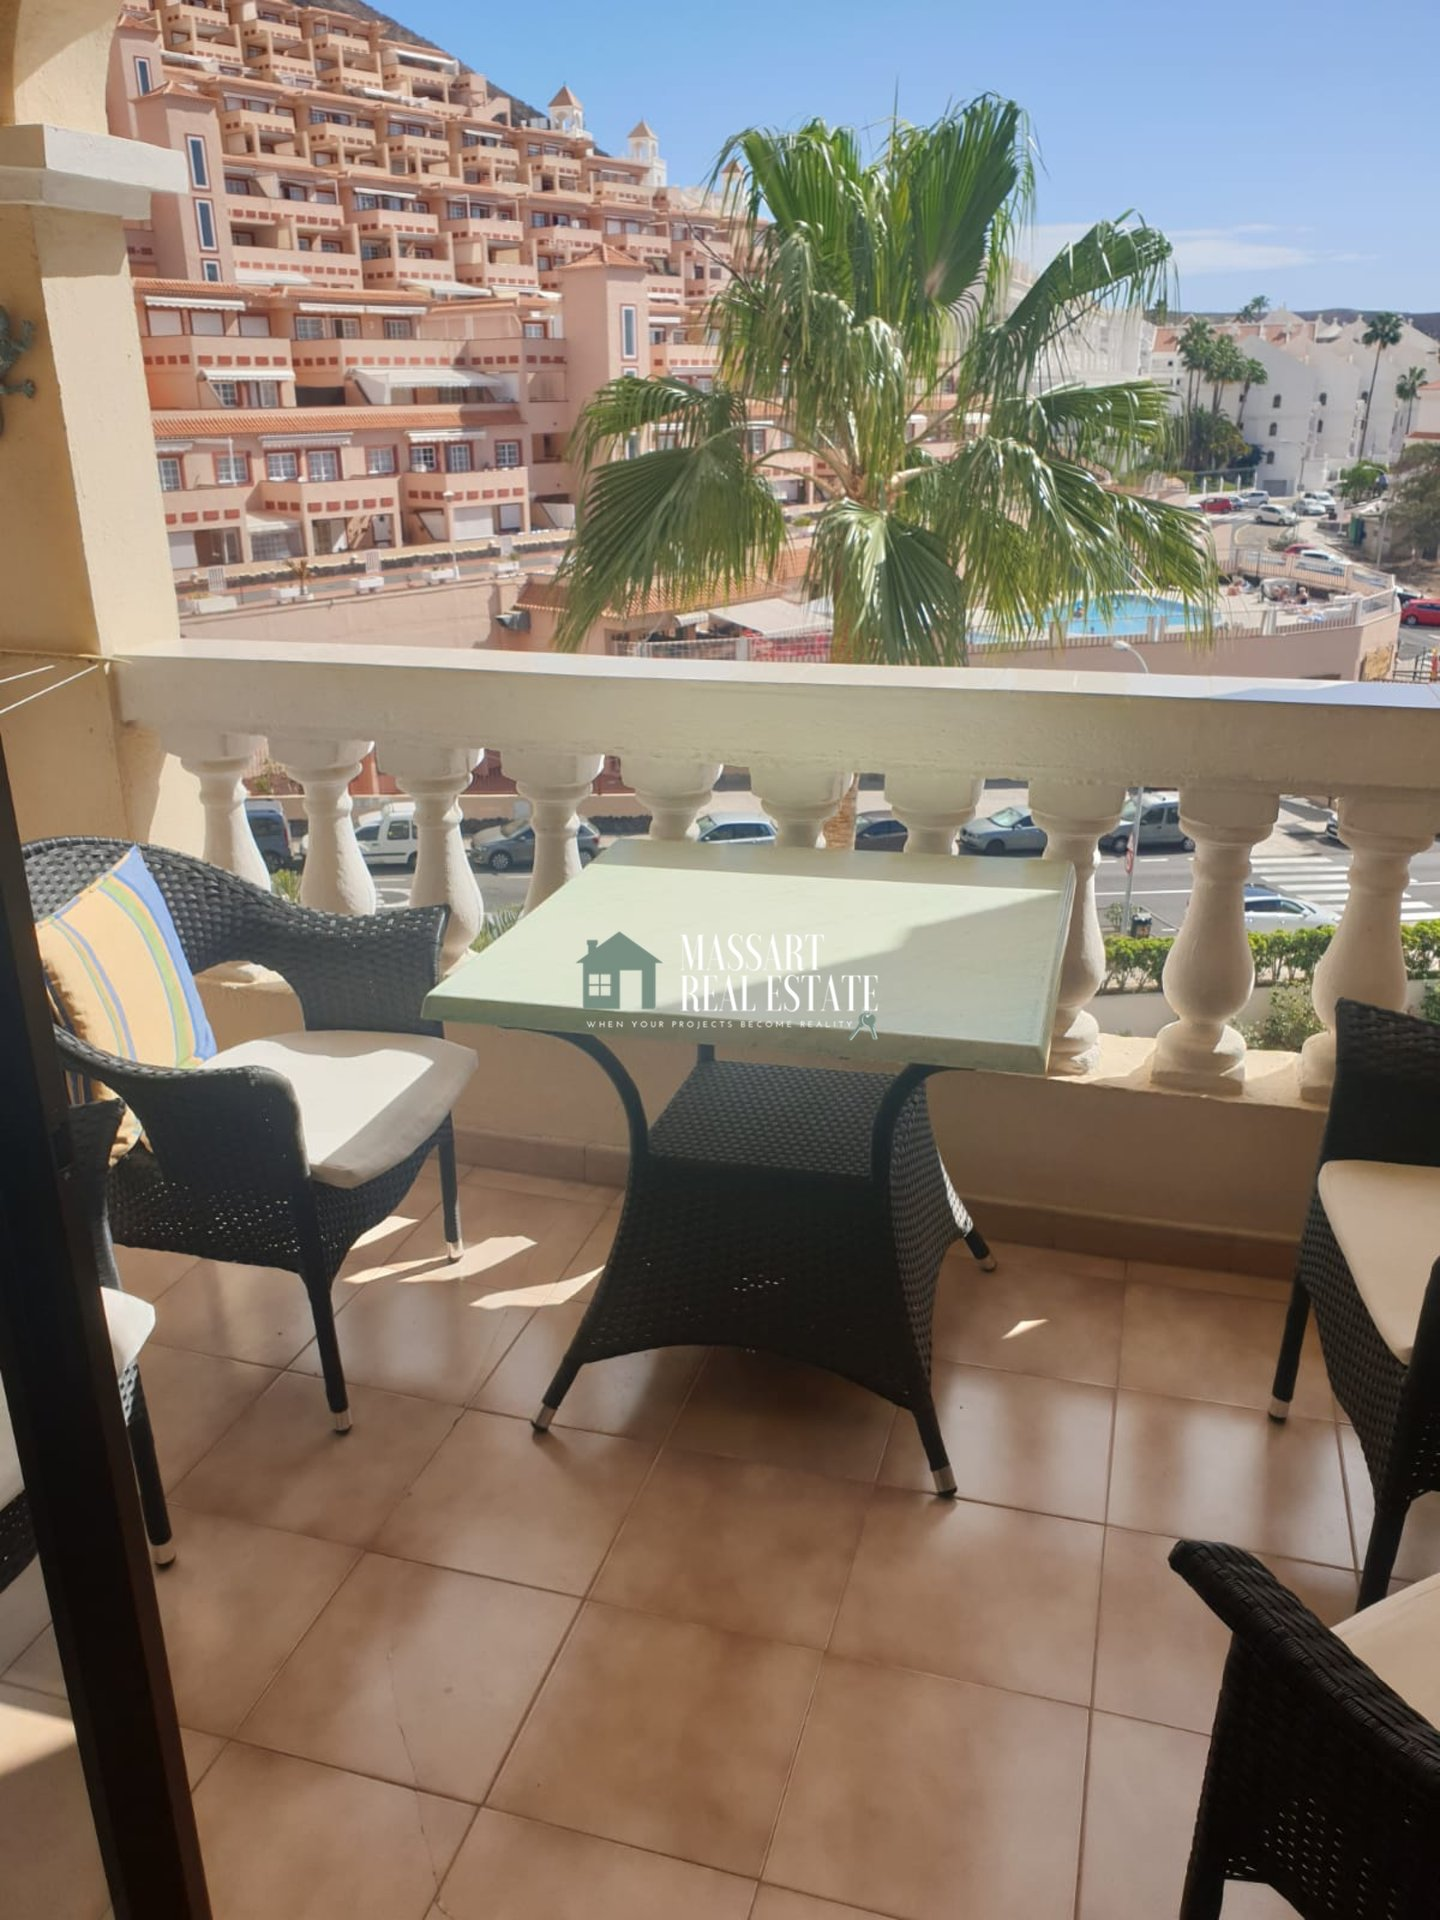 For sale in Avenida San Francisco (Los Cristianos), furnished and recently renovated apartment of 60 m2.